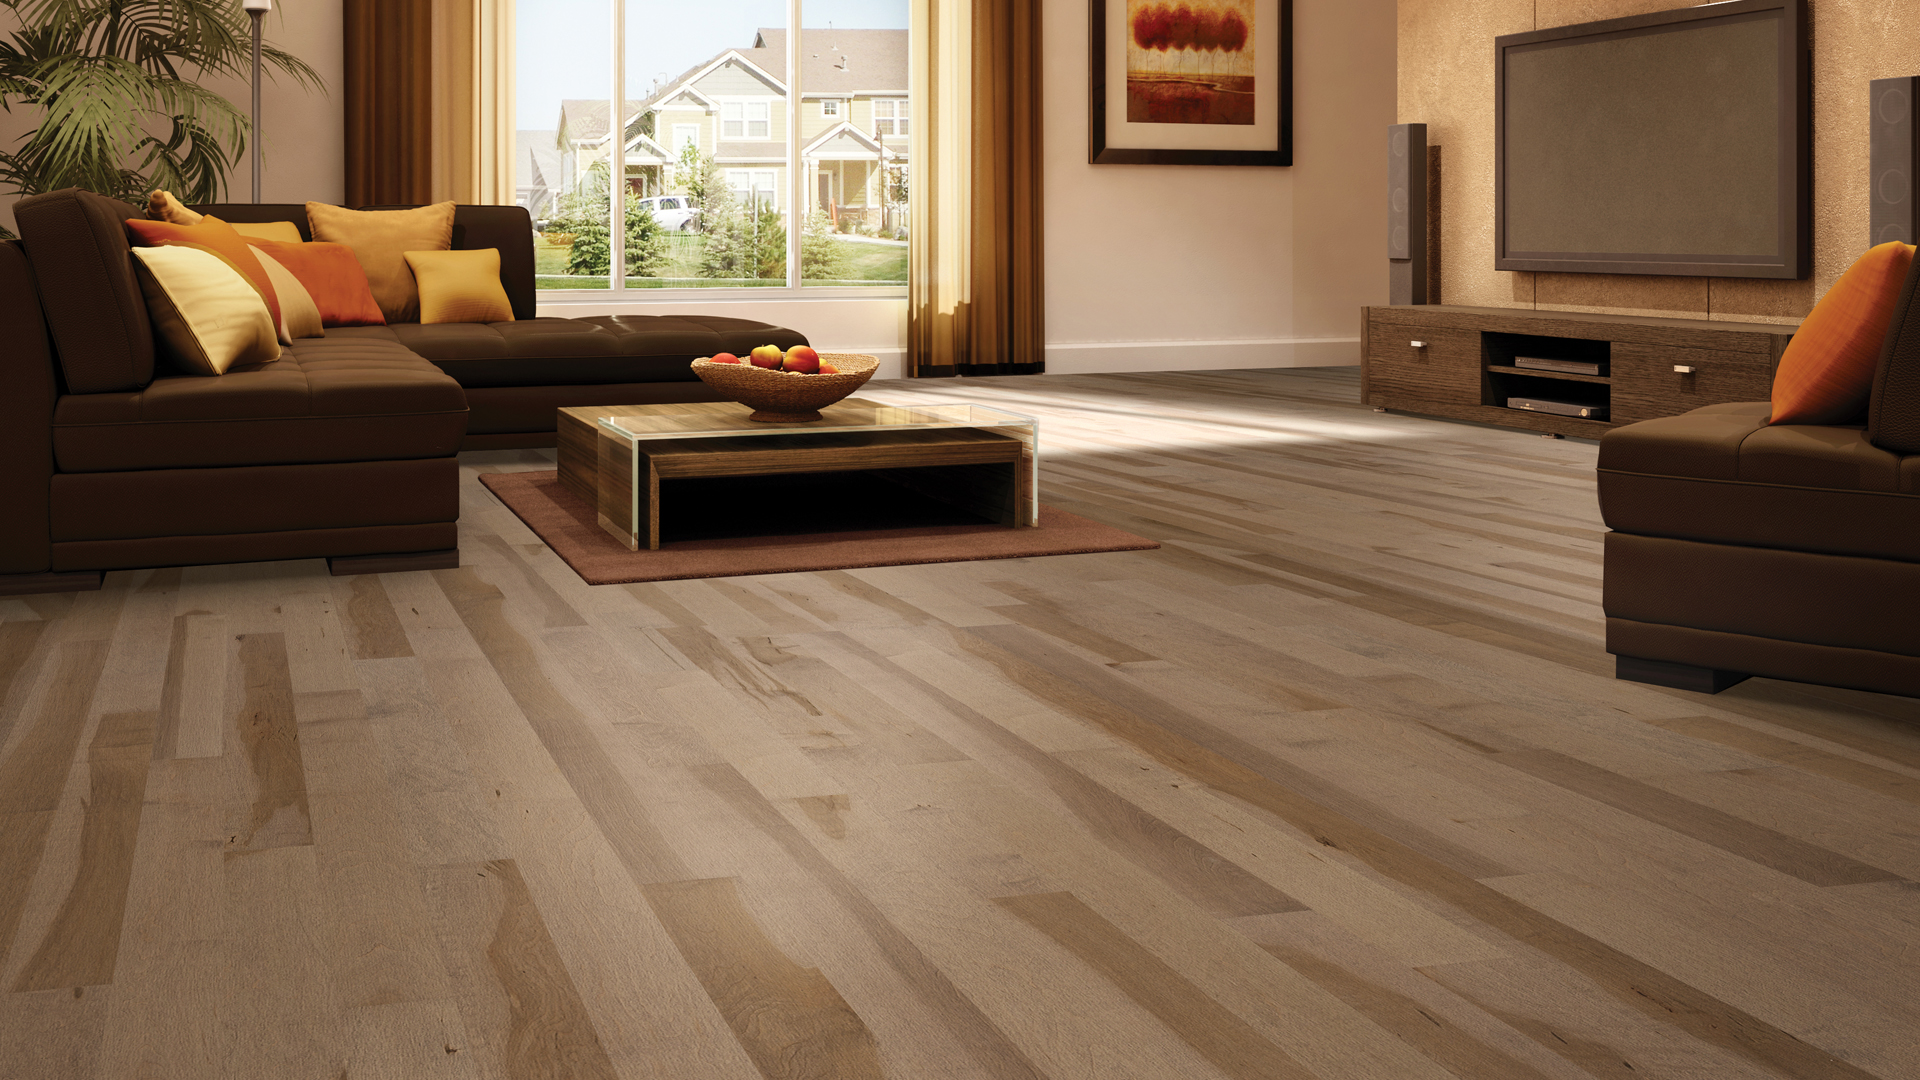 Hard maple antique bronze | Dubeau hardwood floors | Living room decor